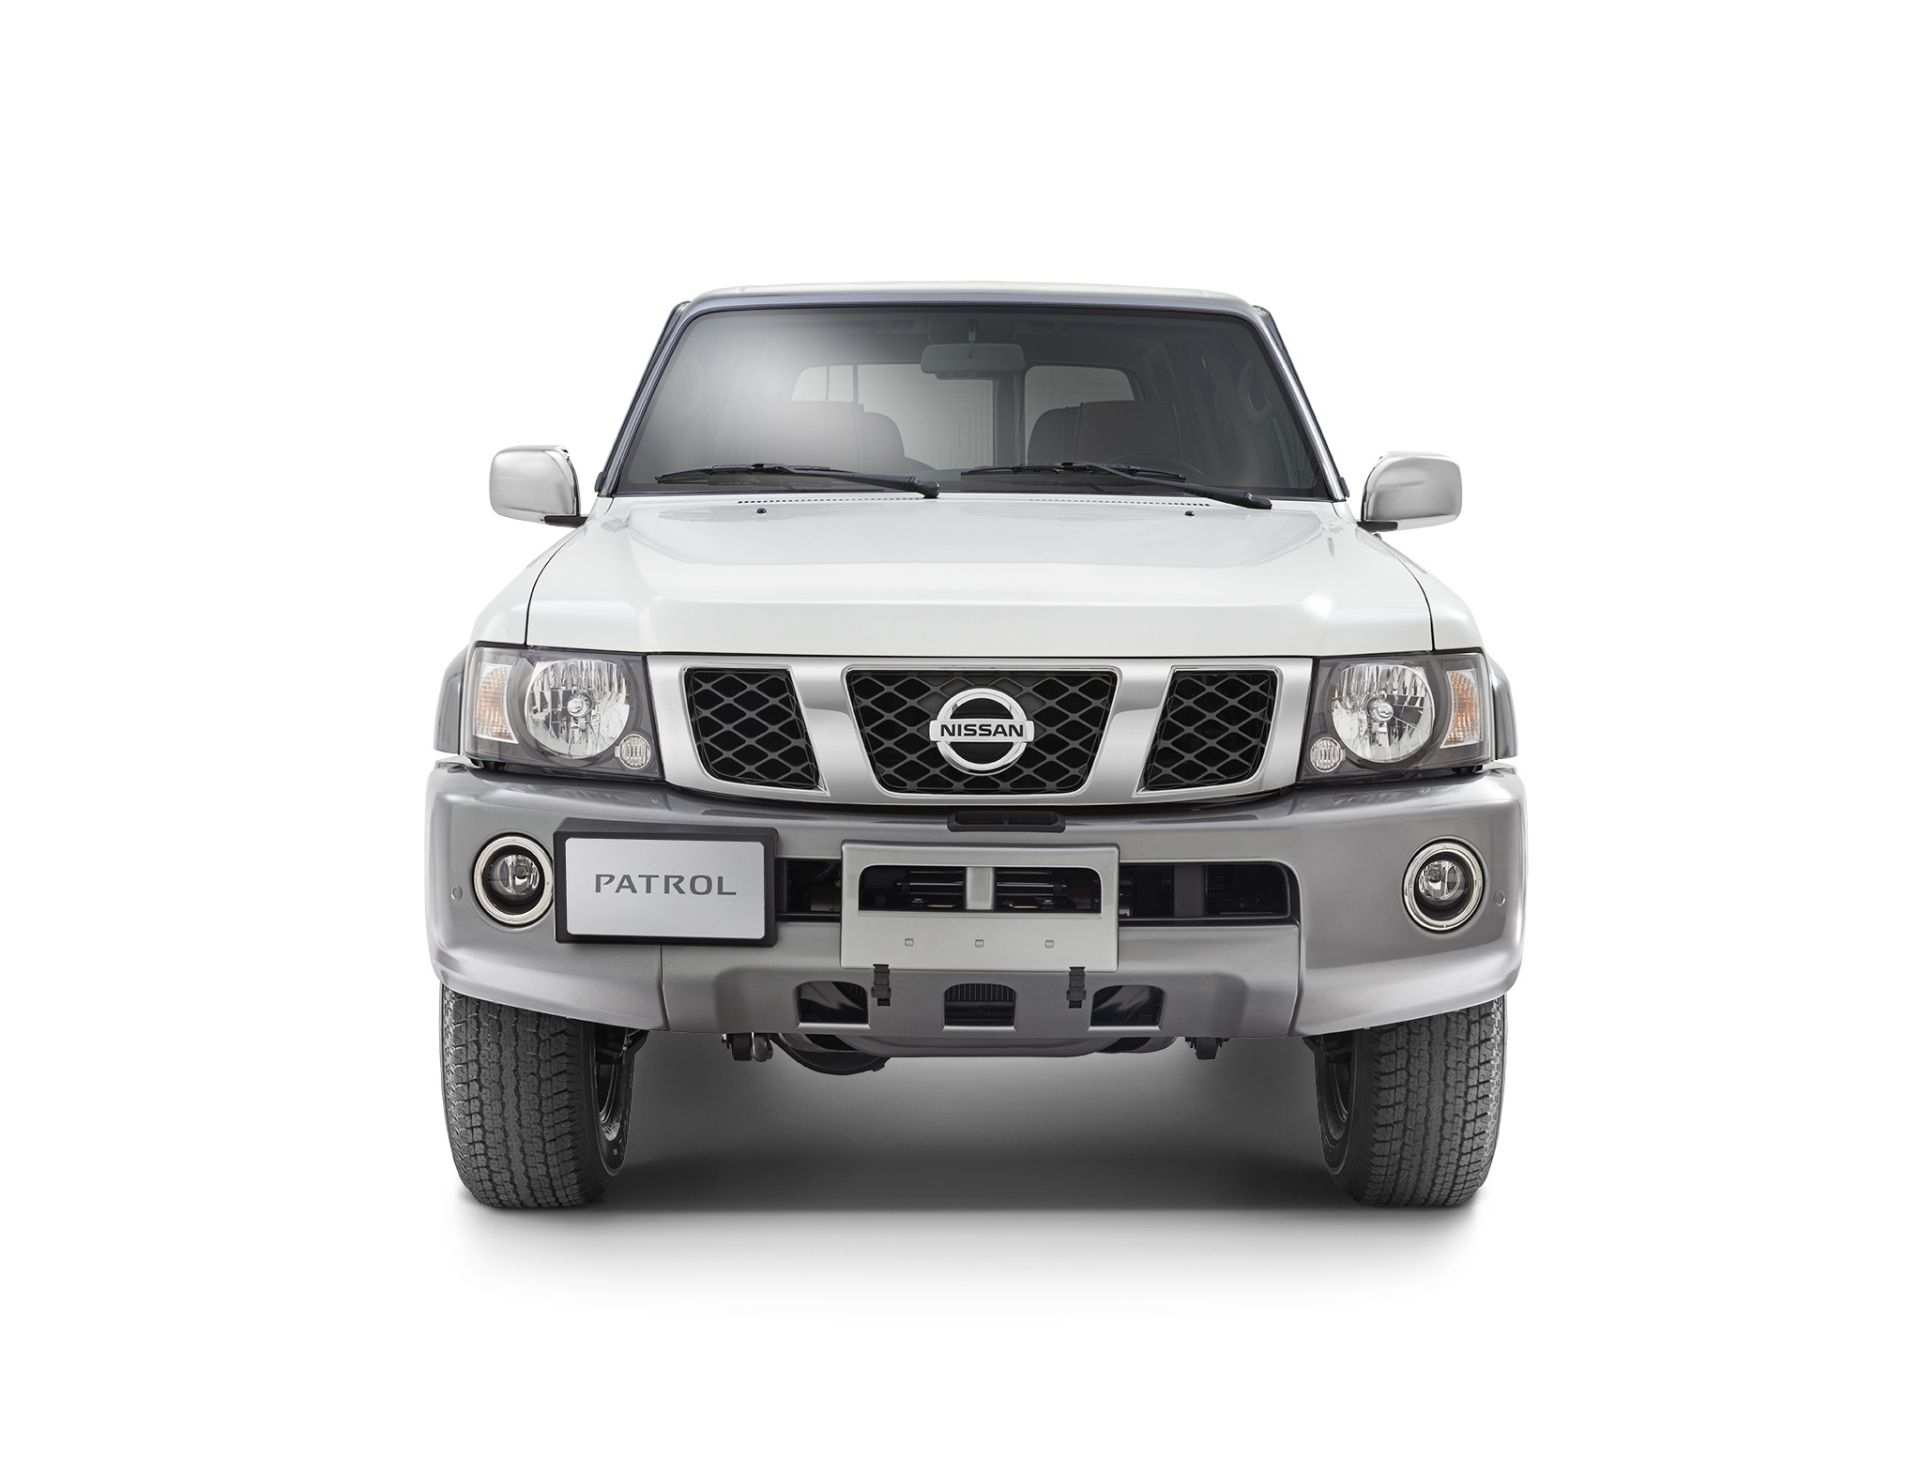 89 The Nissan Patrol Super Safari 2020 Speed Test by Nissan Patrol Super Safari 2020